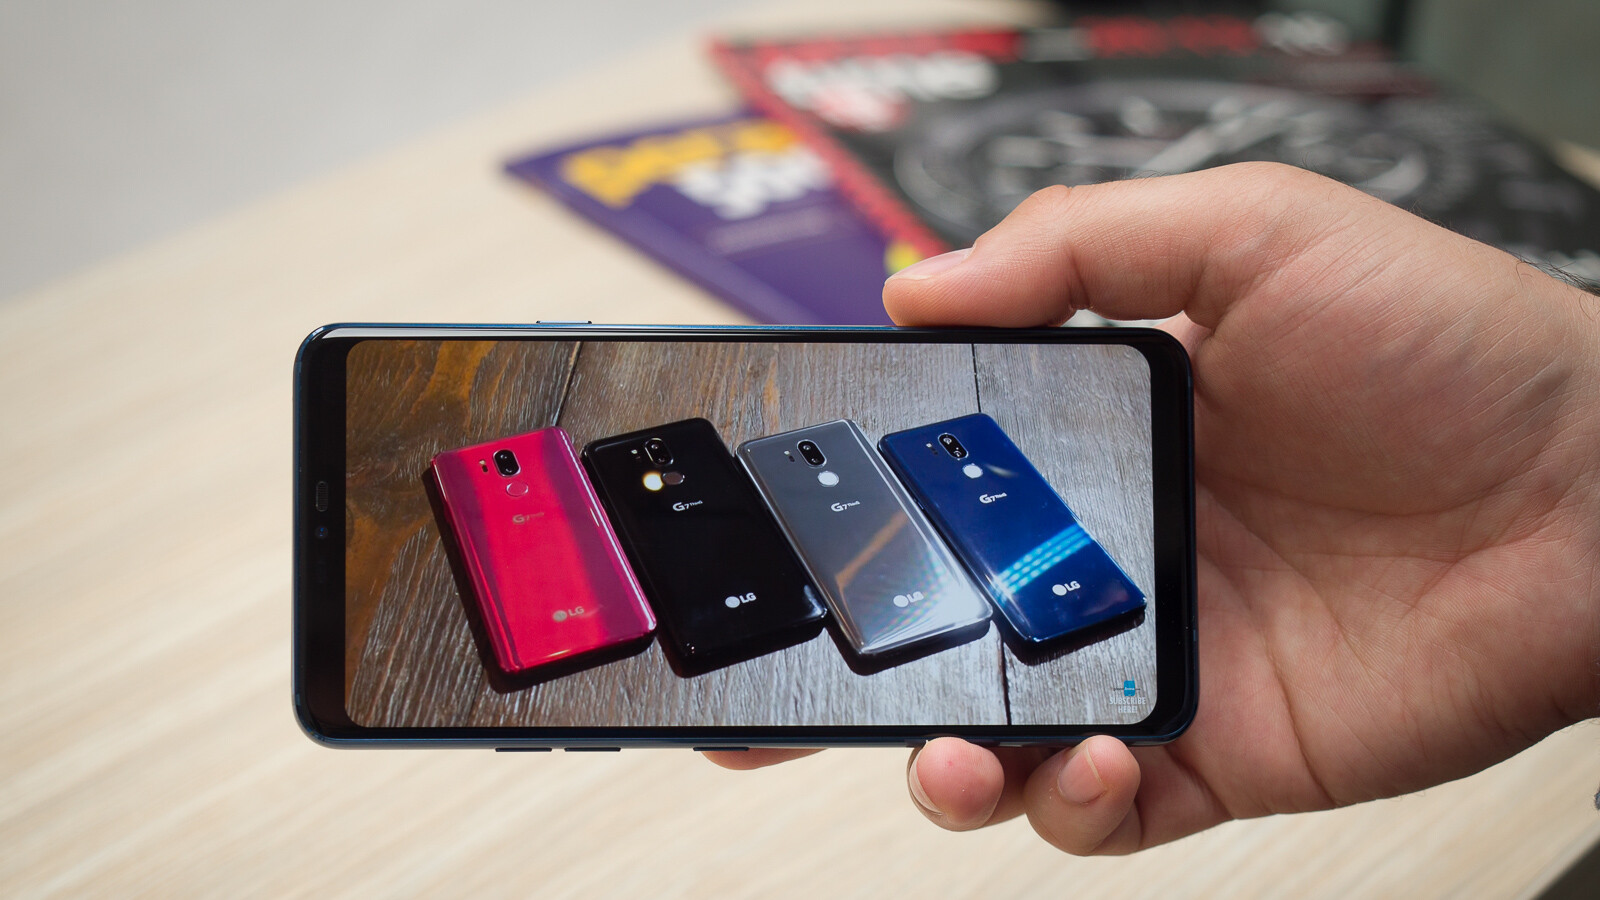 Dc5n United States It In English Created At 2018 08 06 0211 Bundling Invisible Socks Medium 4 Warna Free Ongkir Jabodetabek Back May When Verizon Wireless Started Taking Pre Orders For The Lg G7 Thinq Allowed Customers To Save 100 On Smartphone